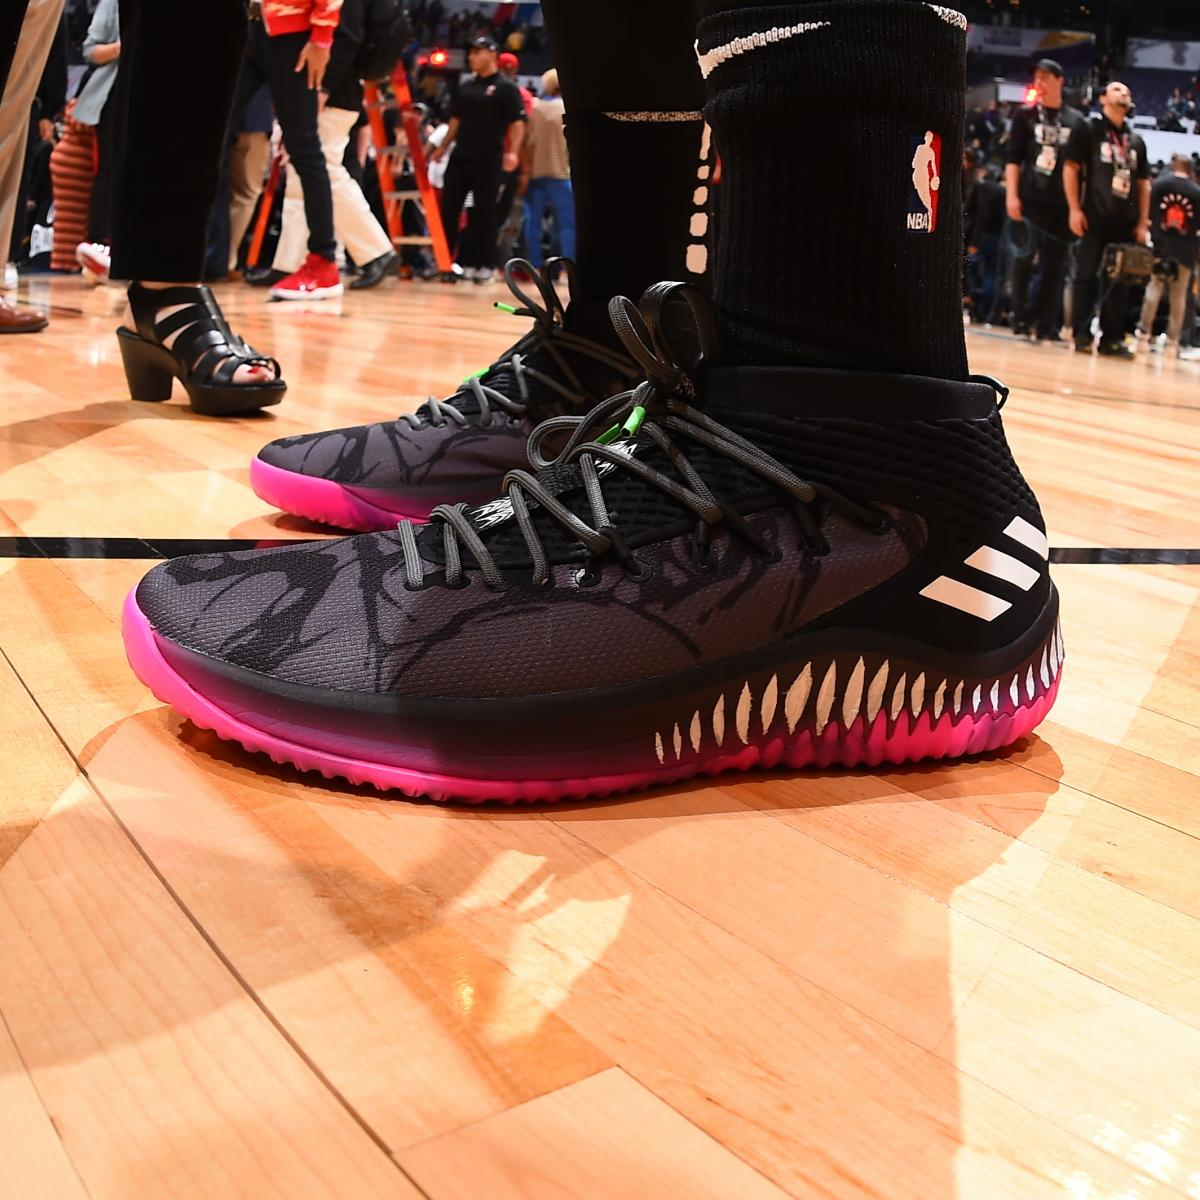 watch 5df90 9d843 Top Sneakers Worn During NBA All-Star Weekend 2018  Bleacher Report   Latest News, Videos and Highlights